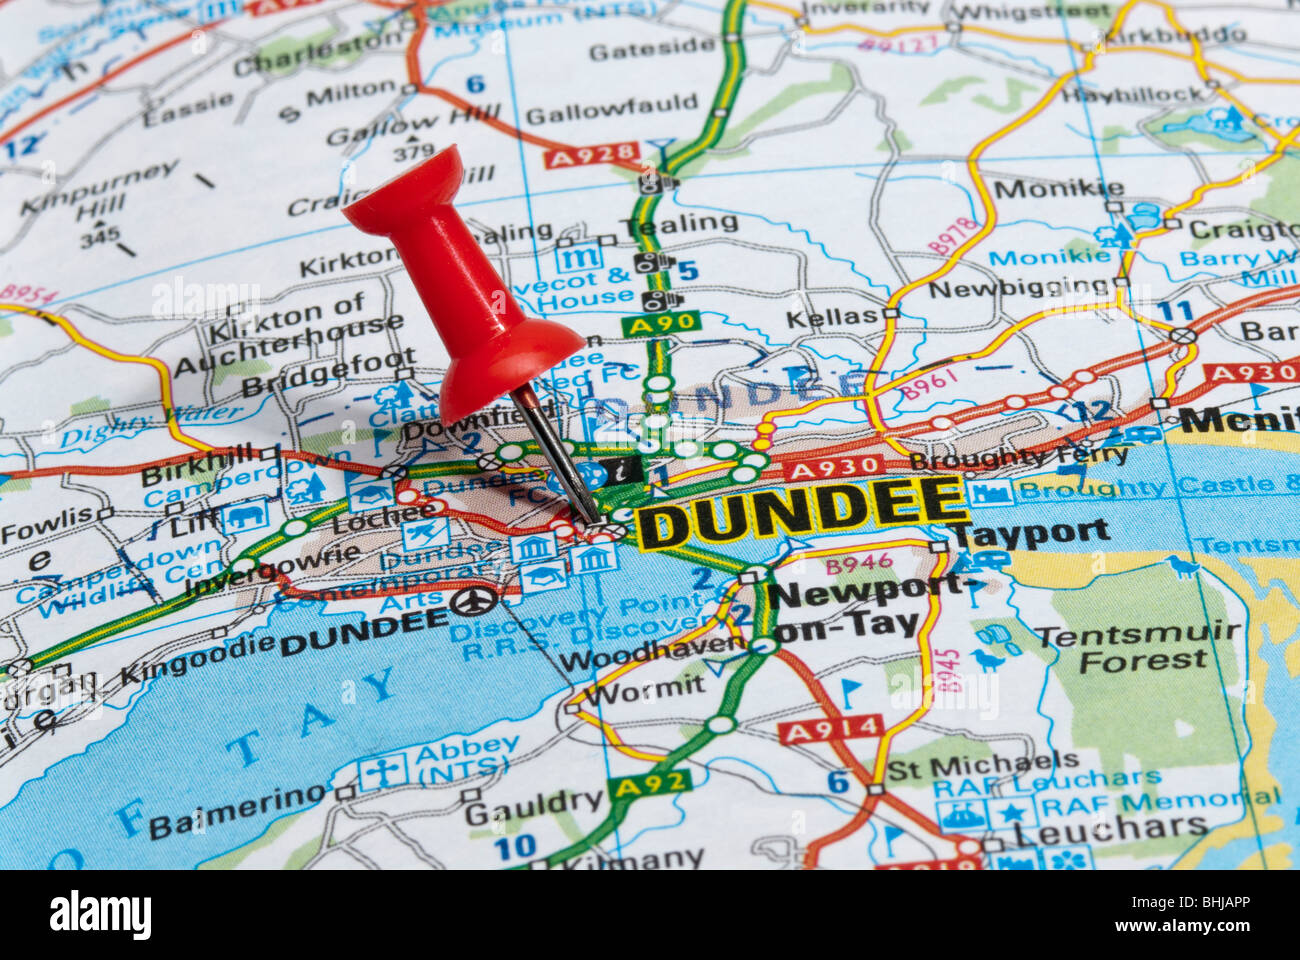 red map pin in road map pointing to city of Dundee Stock Photo